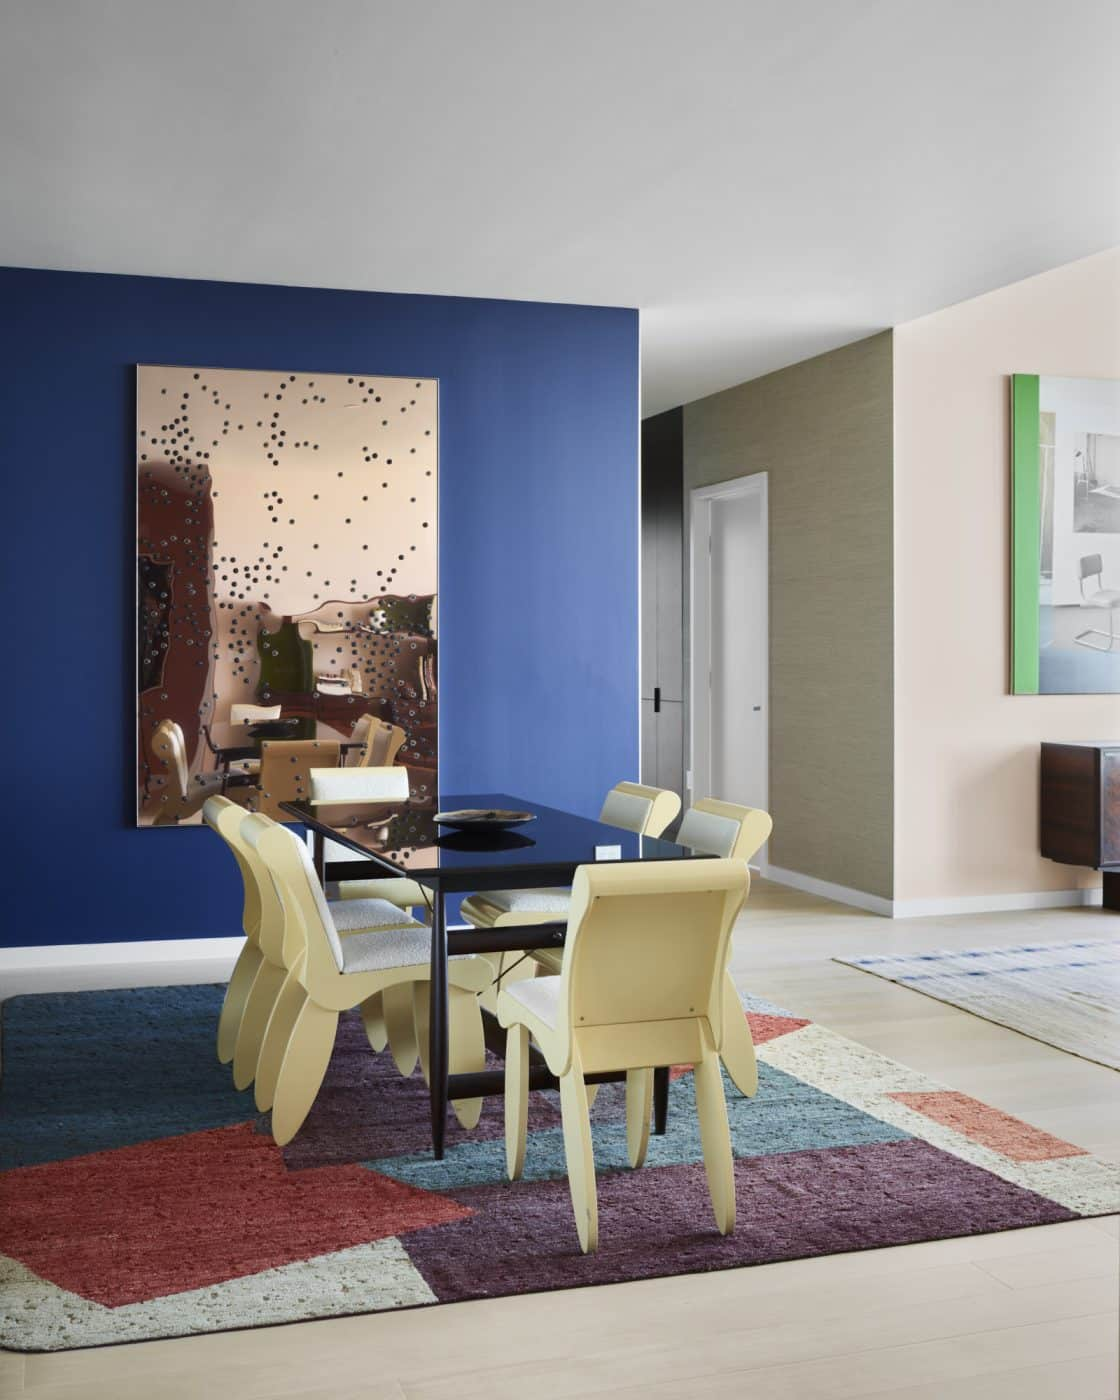 The dining room of Gabriel & Guillaume's staged apartment at Fifteen Fifty in San Francisco